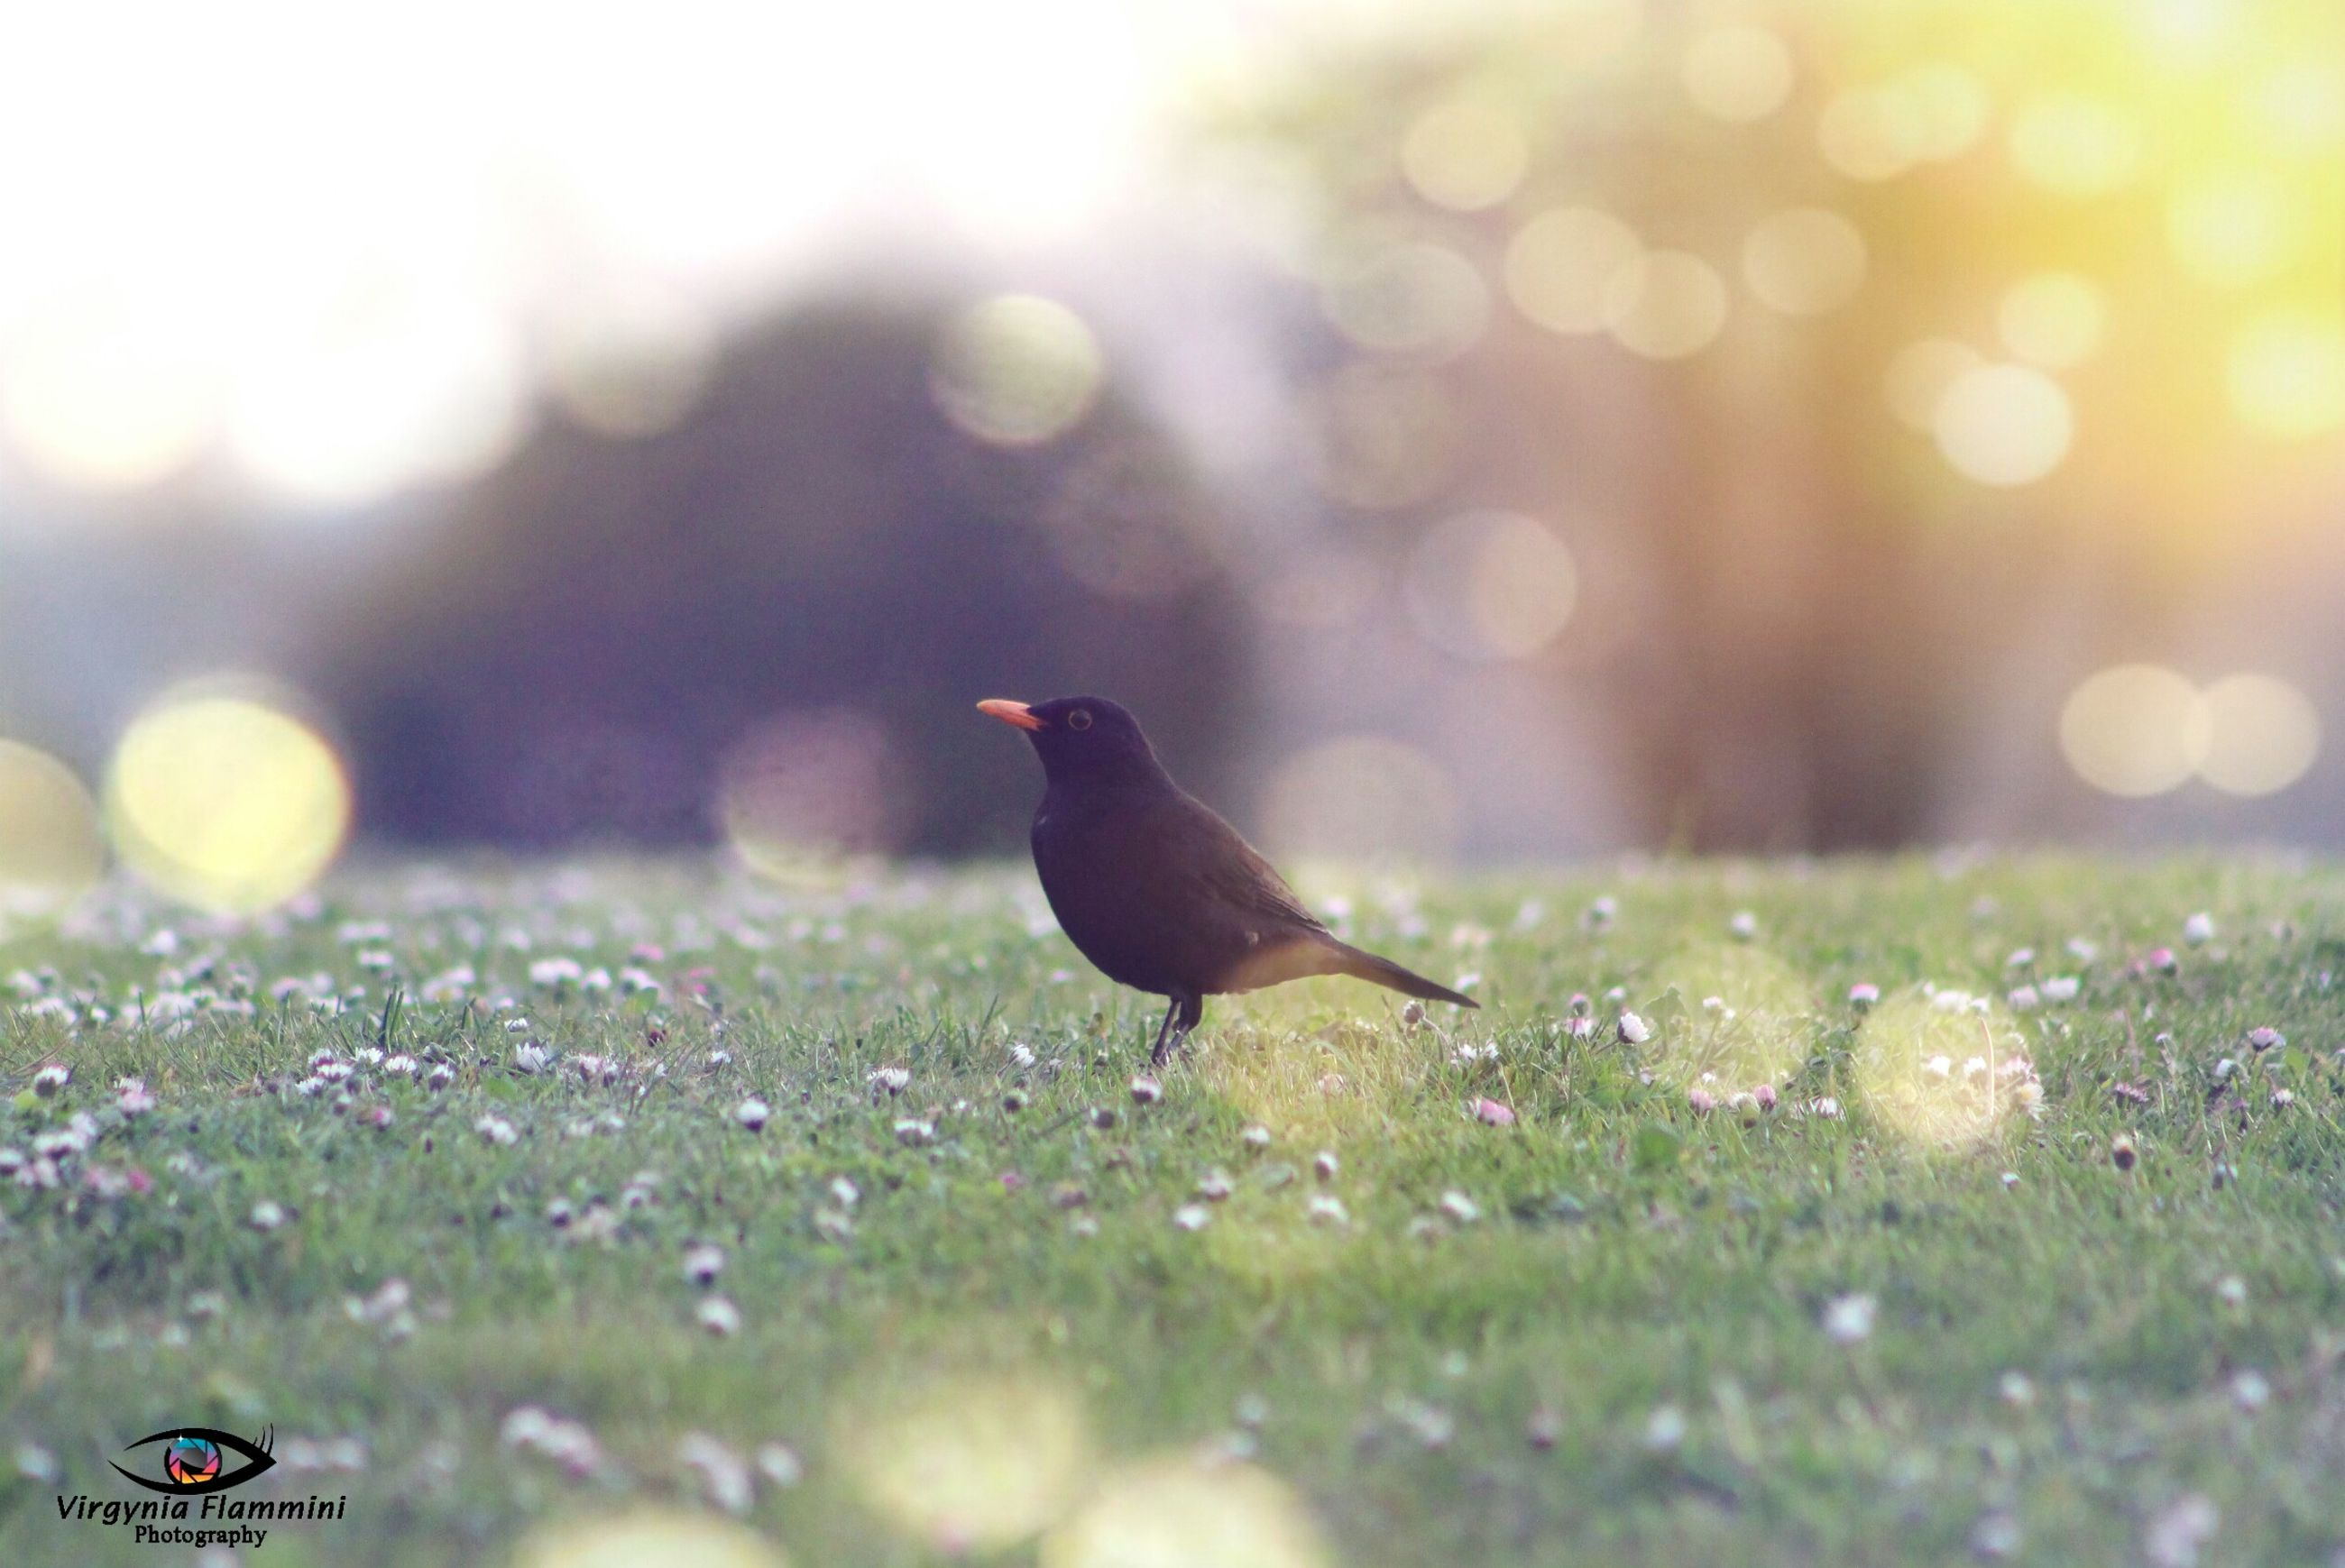 animal themes, one animal, selective focus, animals in the wild, focus on foreground, grass, bird, wildlife, nature, field, close-up, outdoors, black color, no people, full length, day, side view, beauty in nature, sunlight, grassy